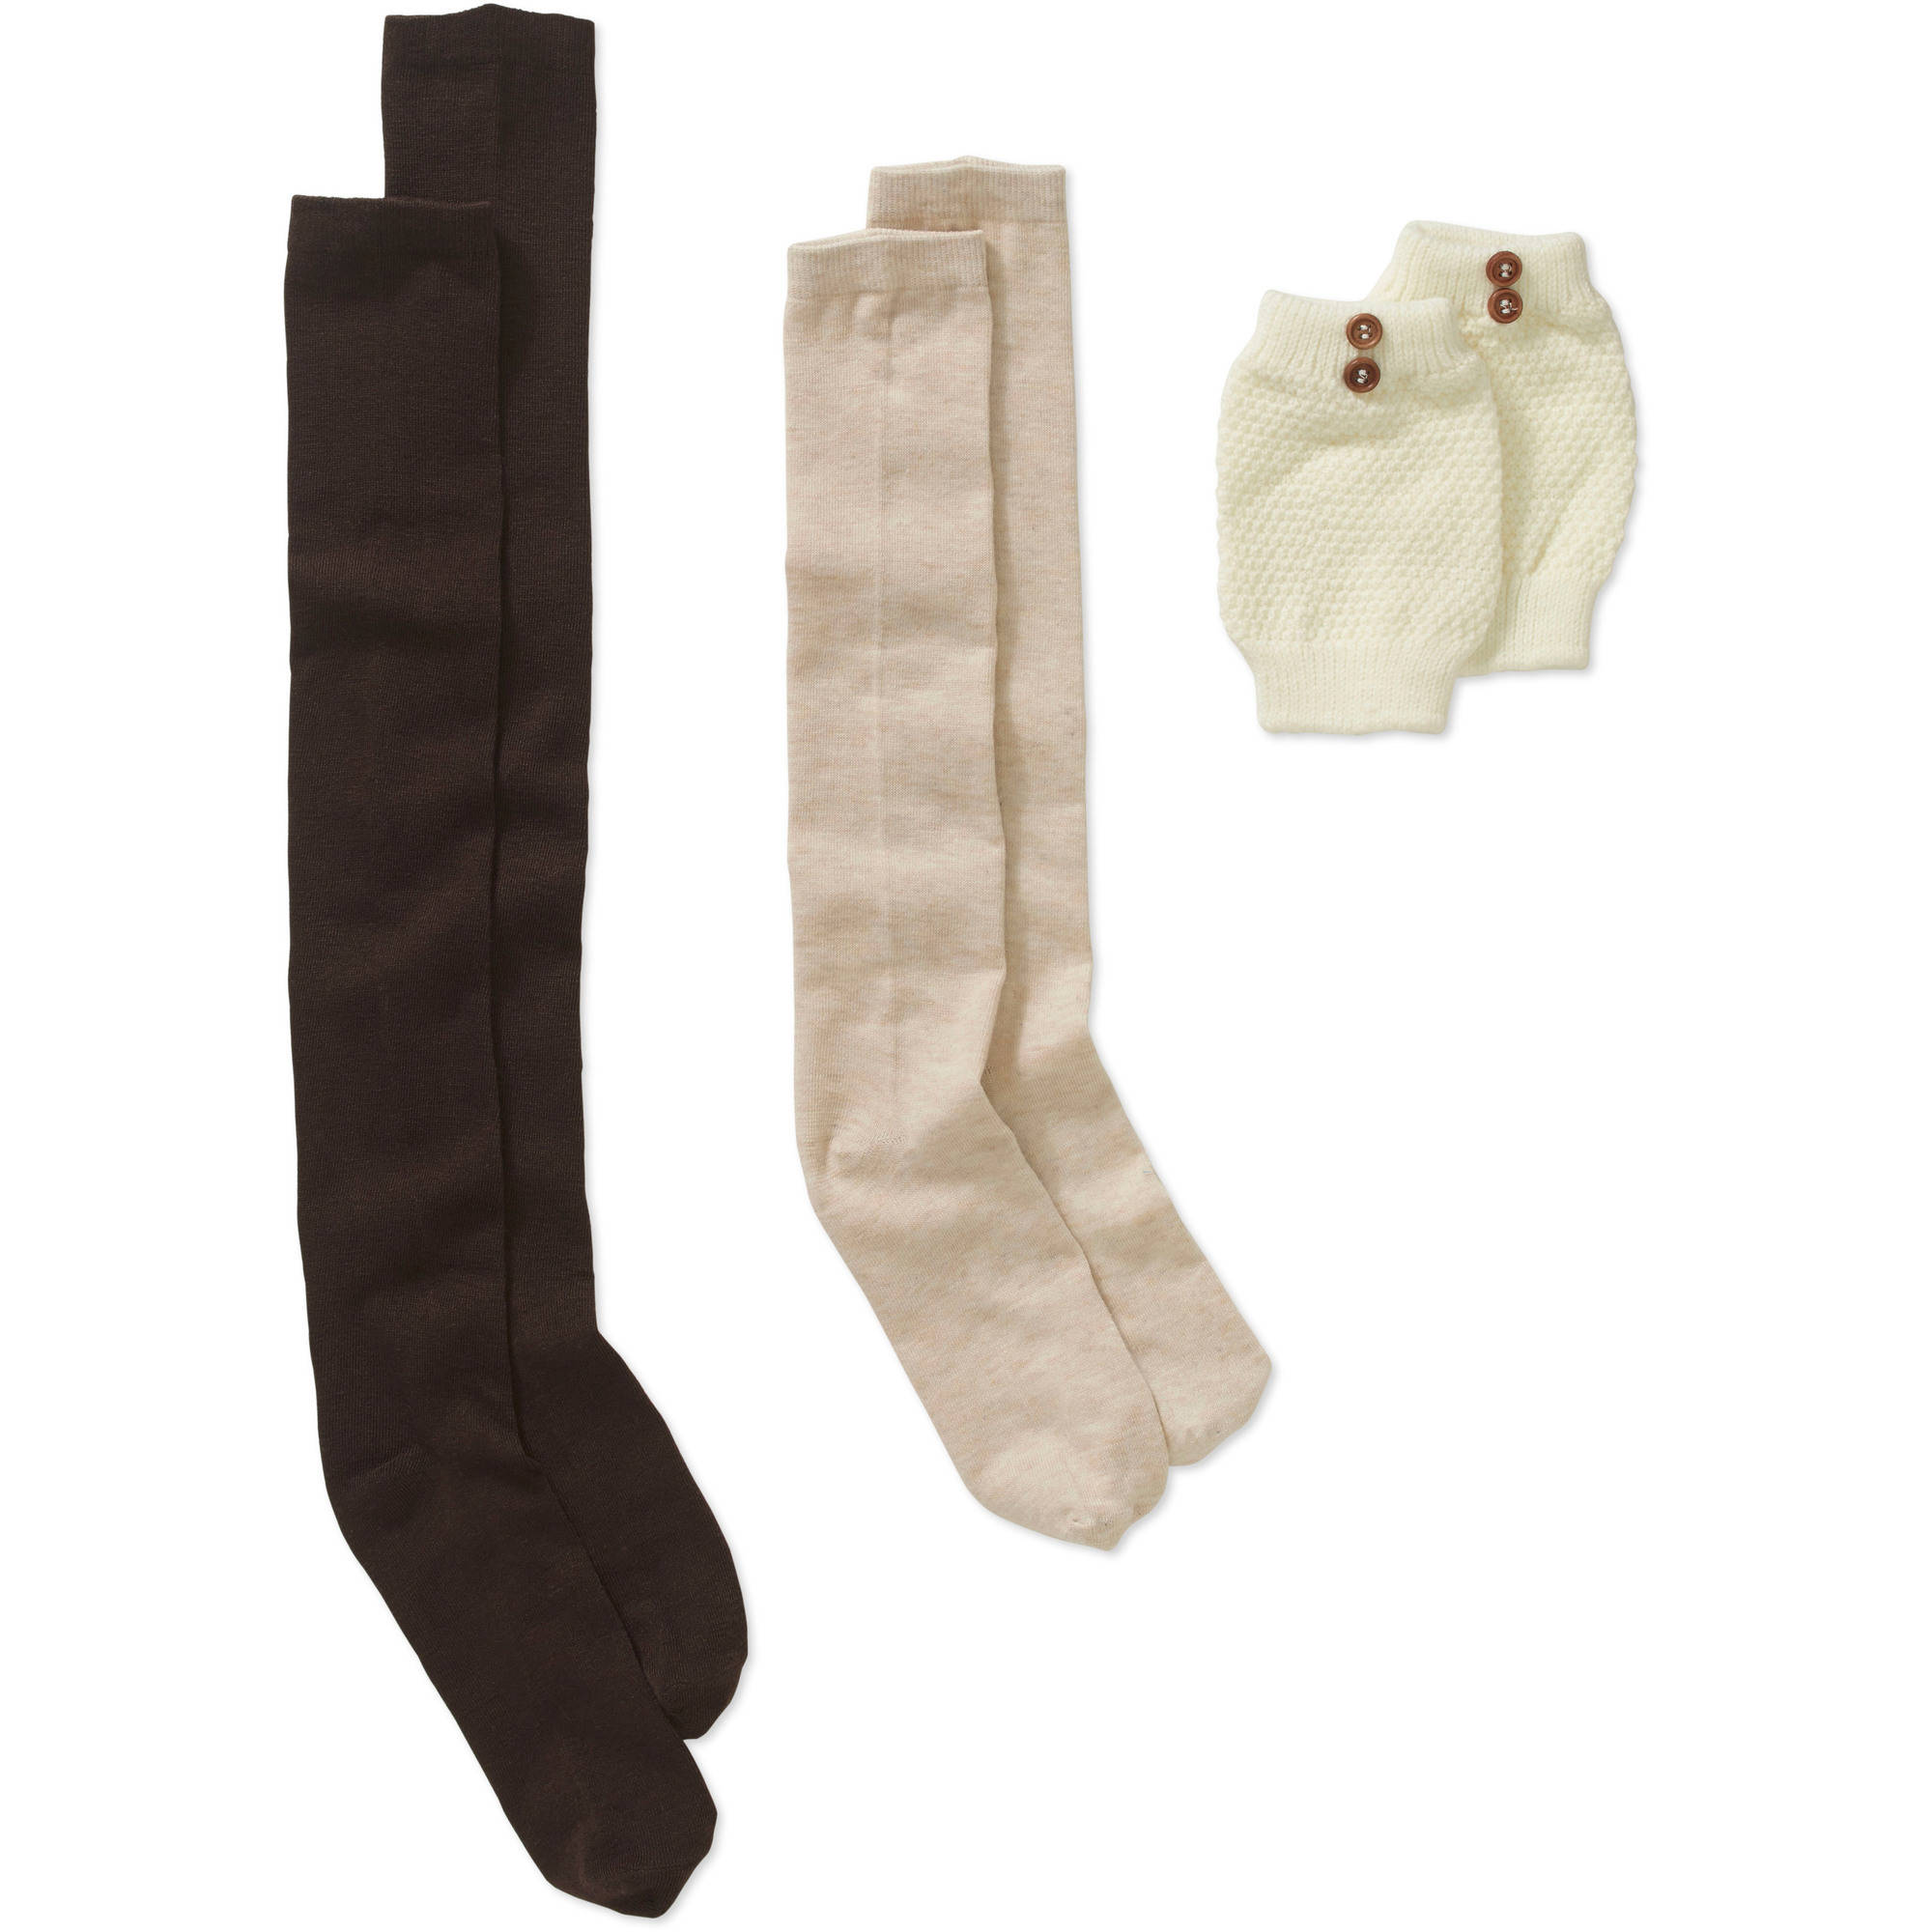 Ladies Knee High, Over the Knee, and Boot Cuff with Ribbed Seed Stitch and Button Detail Sock Set